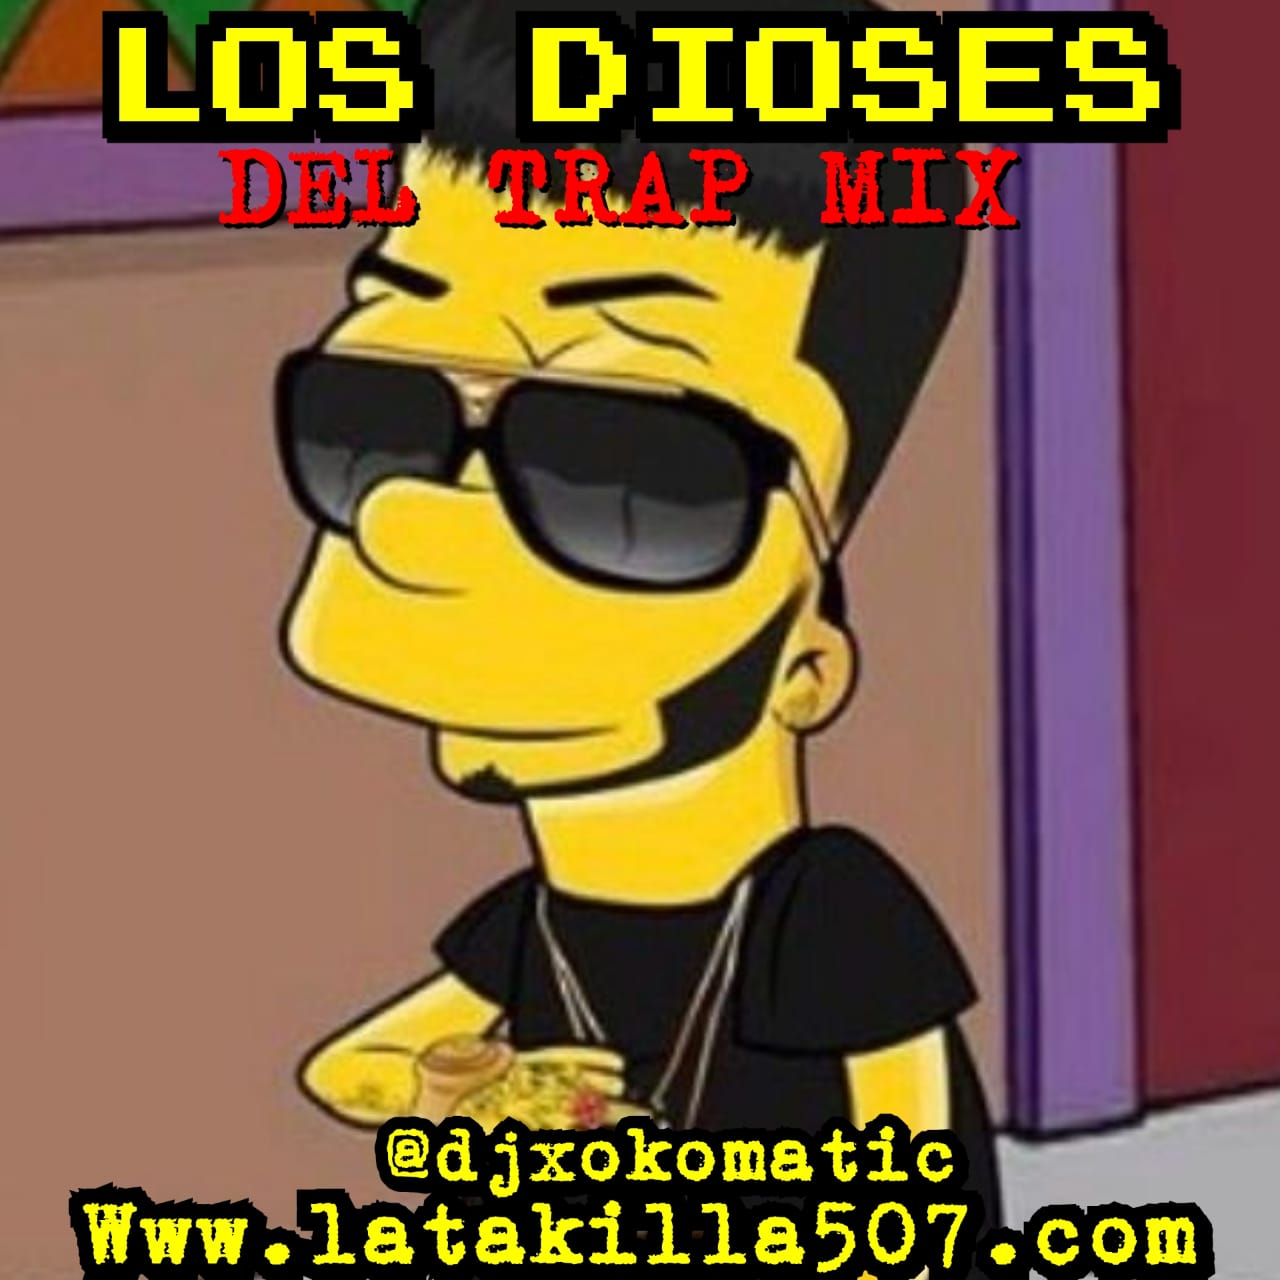 Los Dioses del Trap Mixtape by Dj Xokomatic.mp3